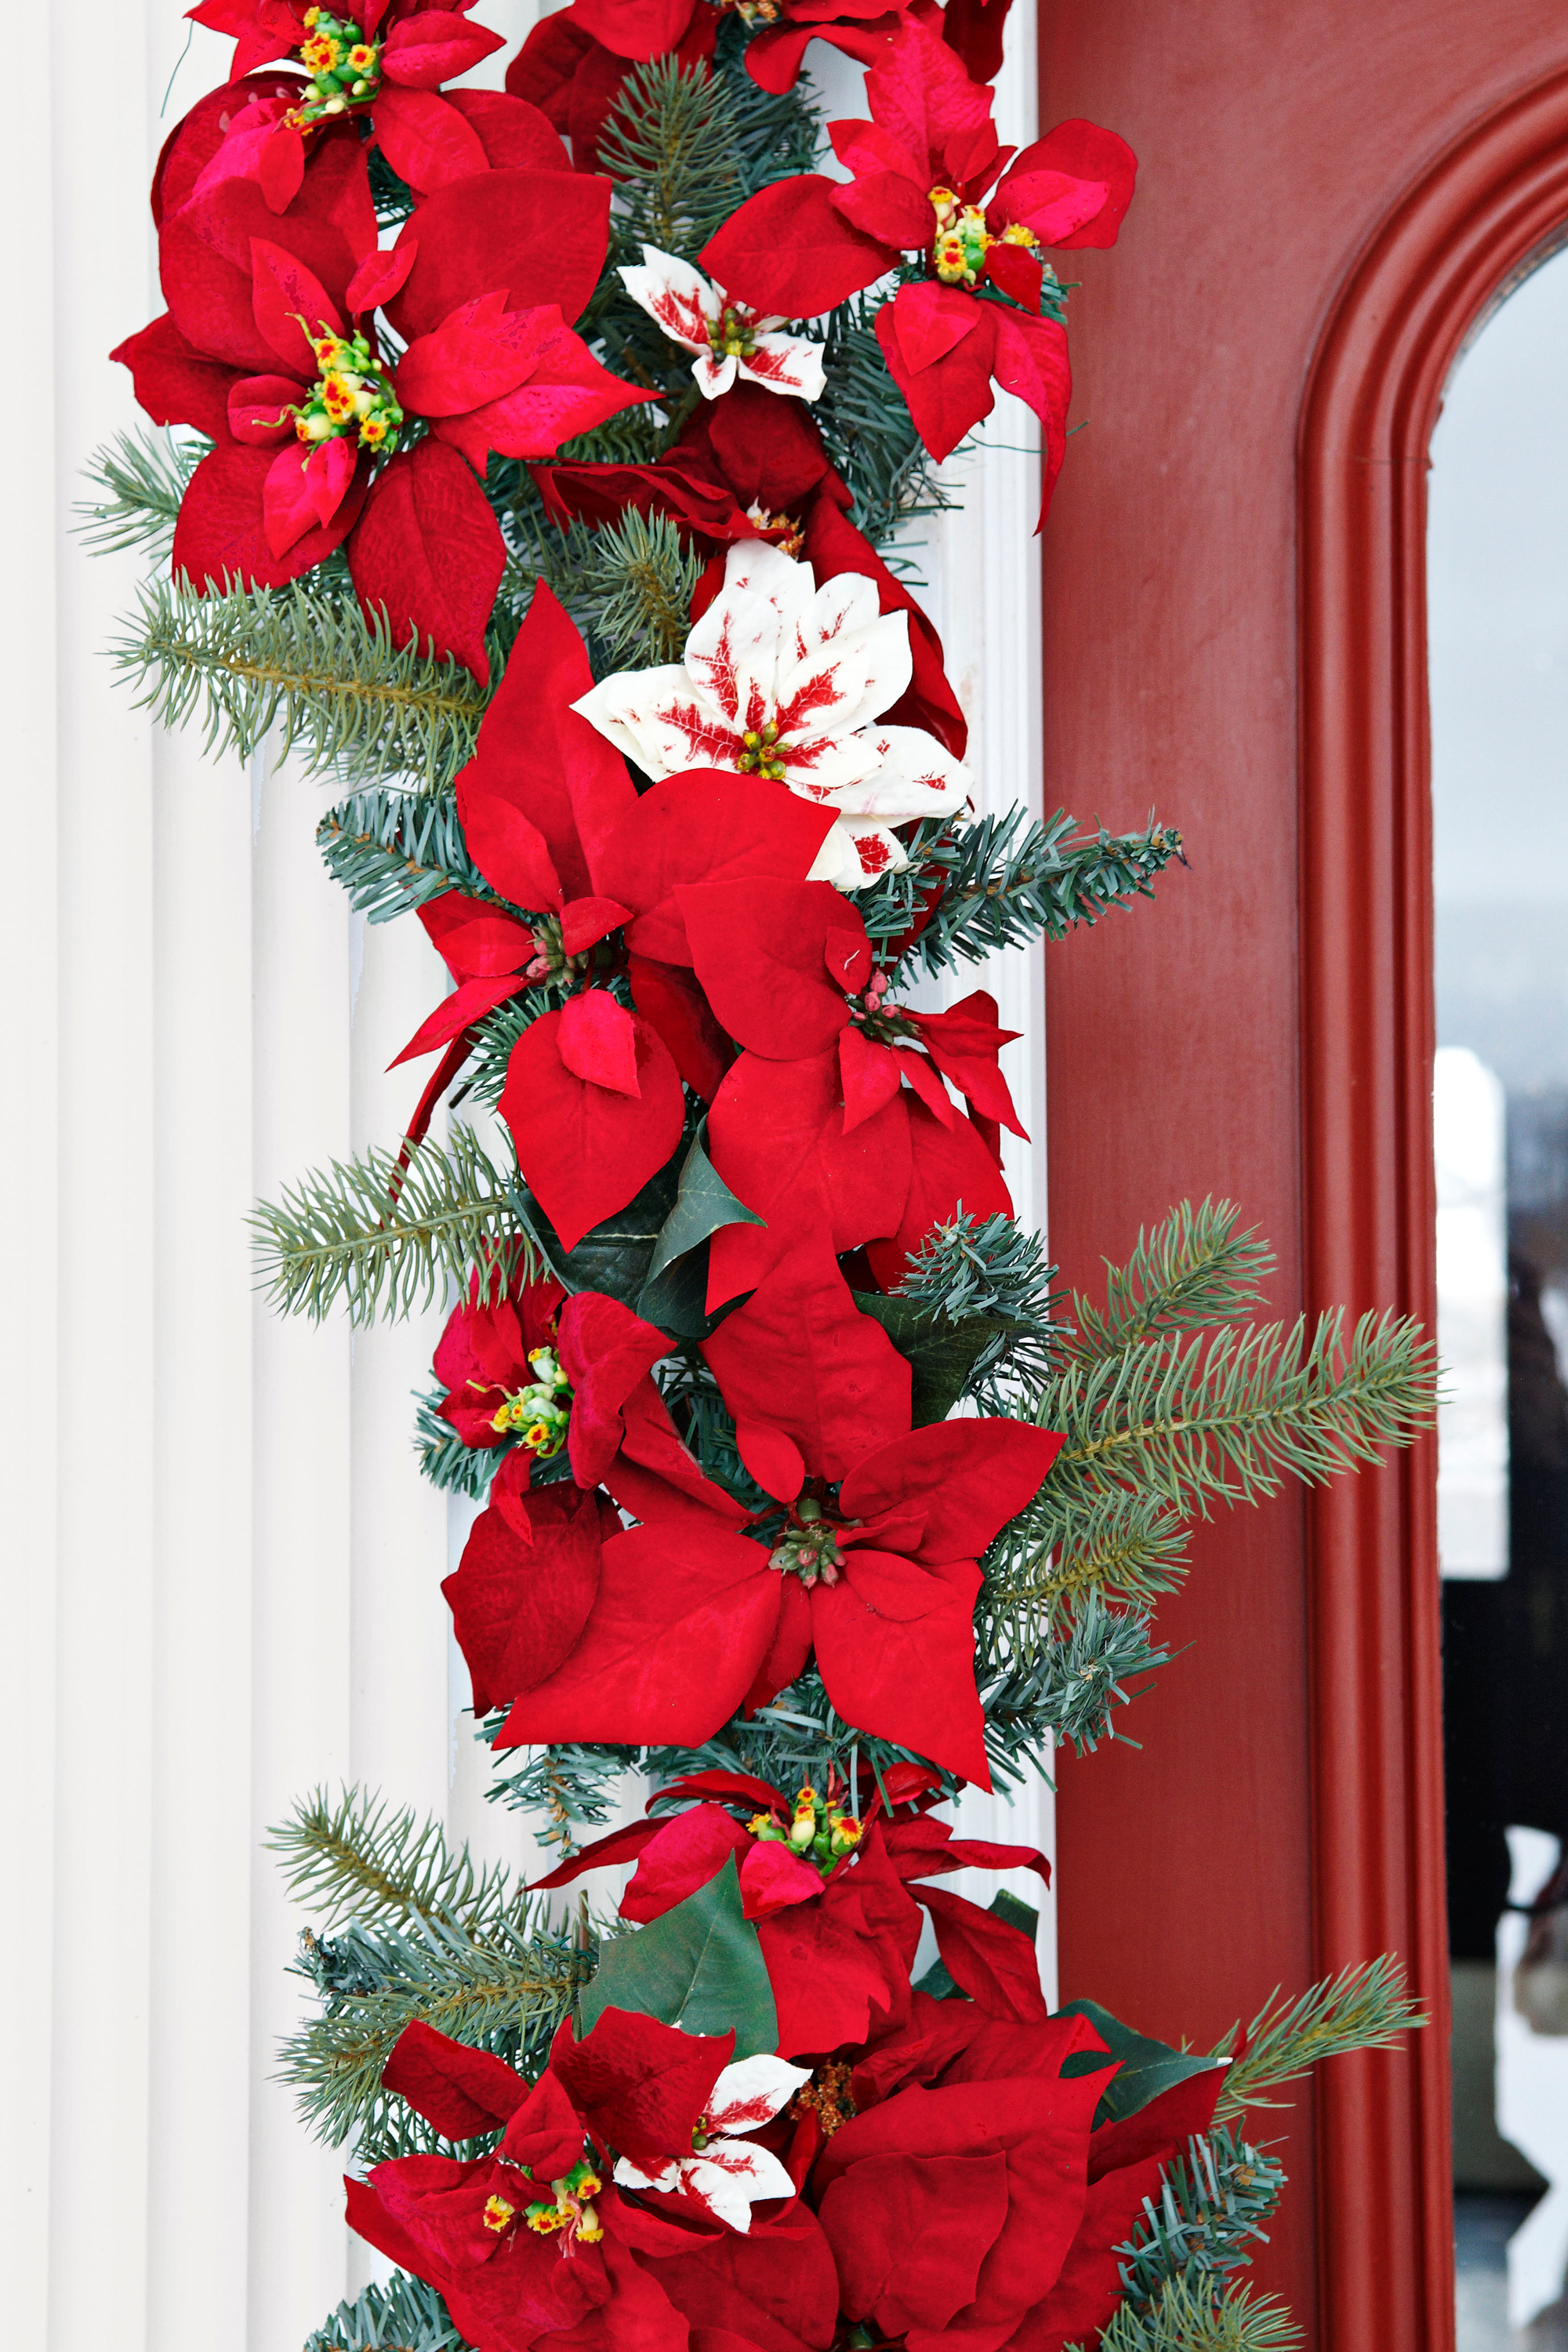 Christmas Garland Ideas 55 best christmas garland ideas - decorating with holiday garlands